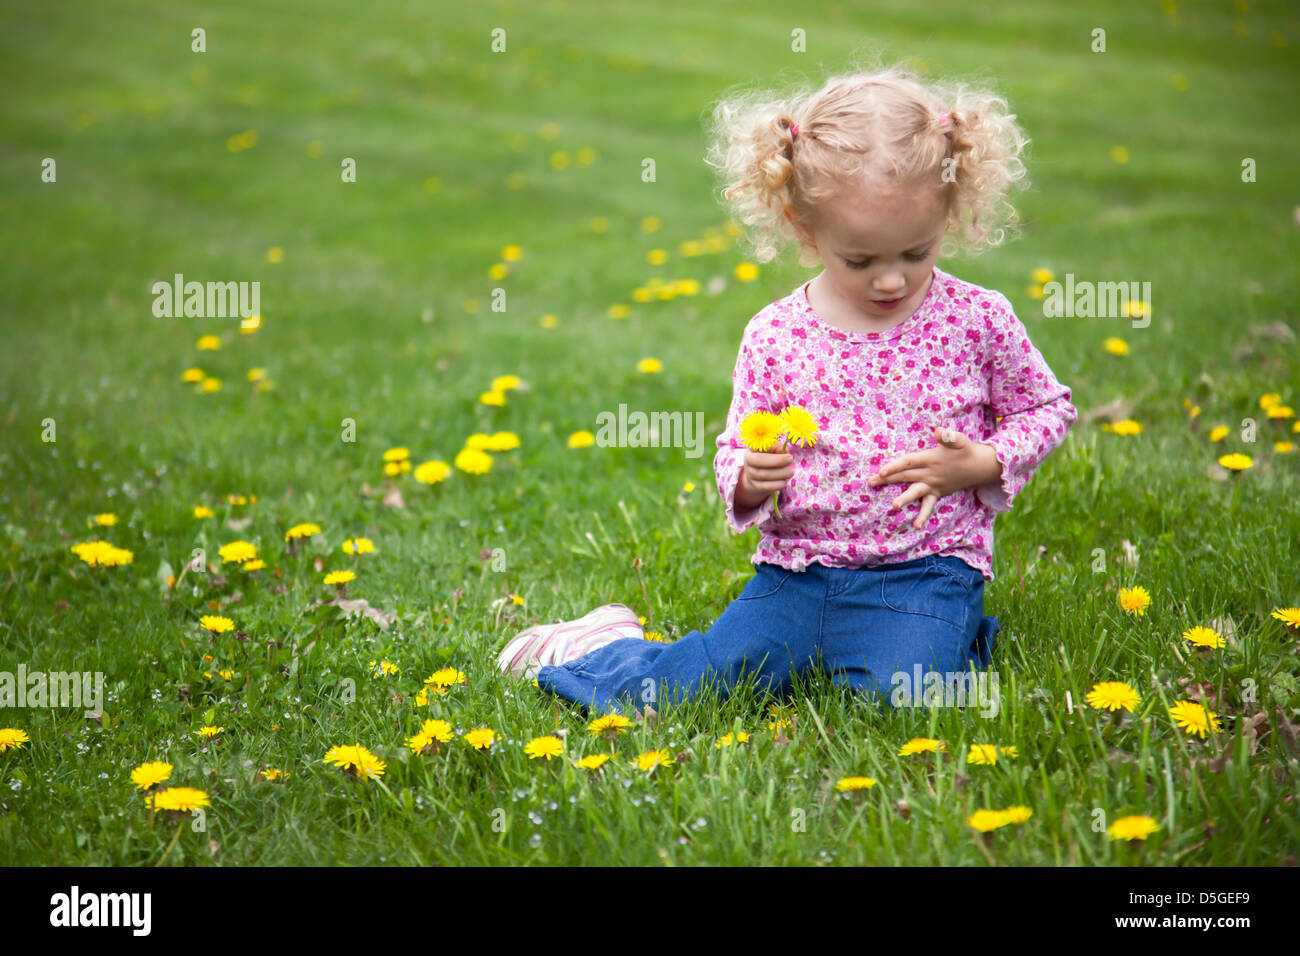 Curly-headed, blond, toddler sitting on lawn picking dandelions. - Stock Image